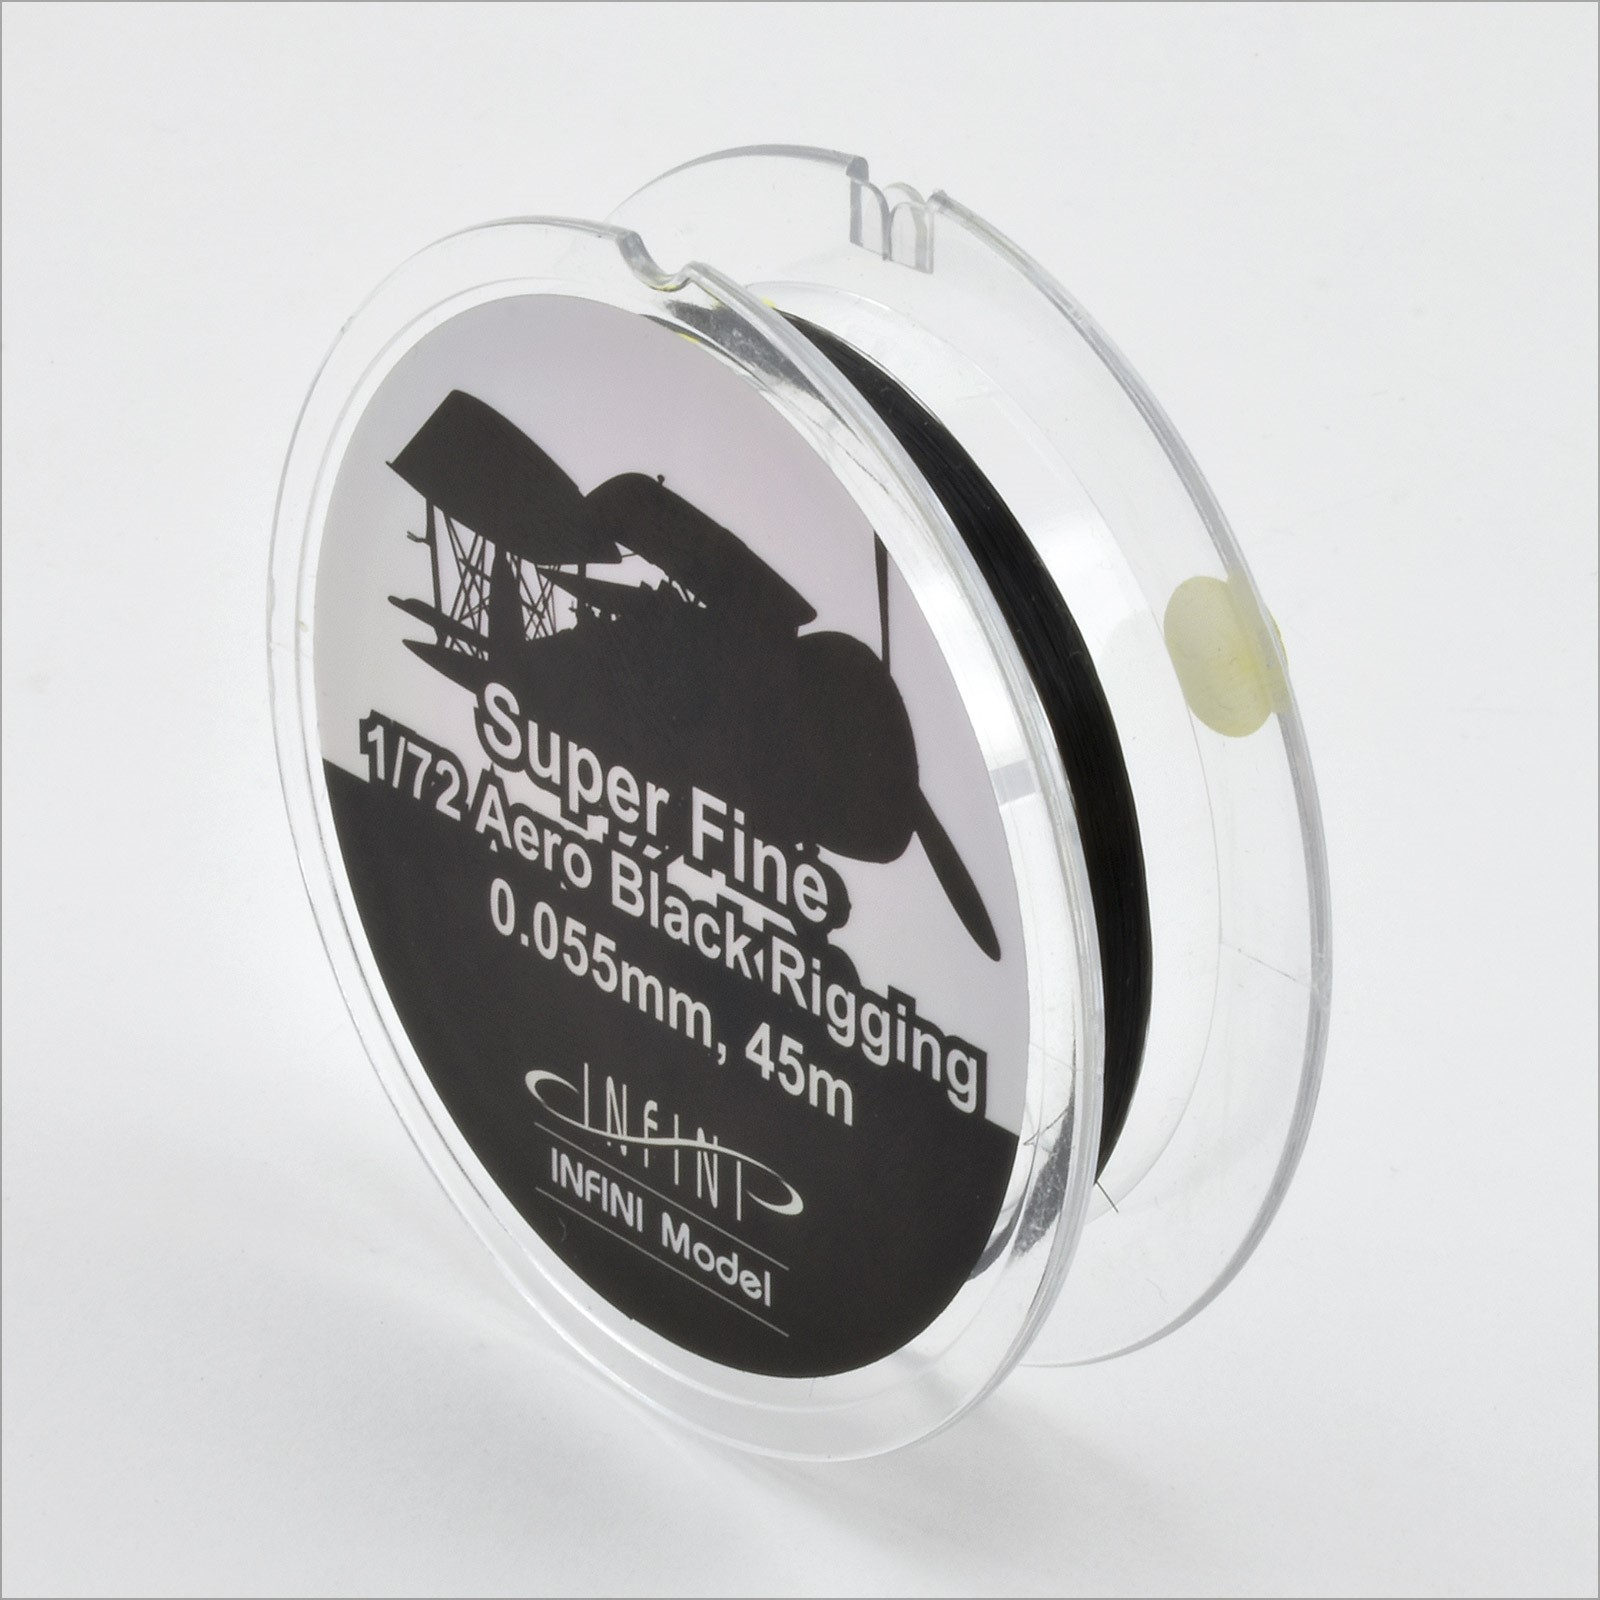 Black Aero Rigging Wire Super Fine 0.055mm (1/72) 145ft